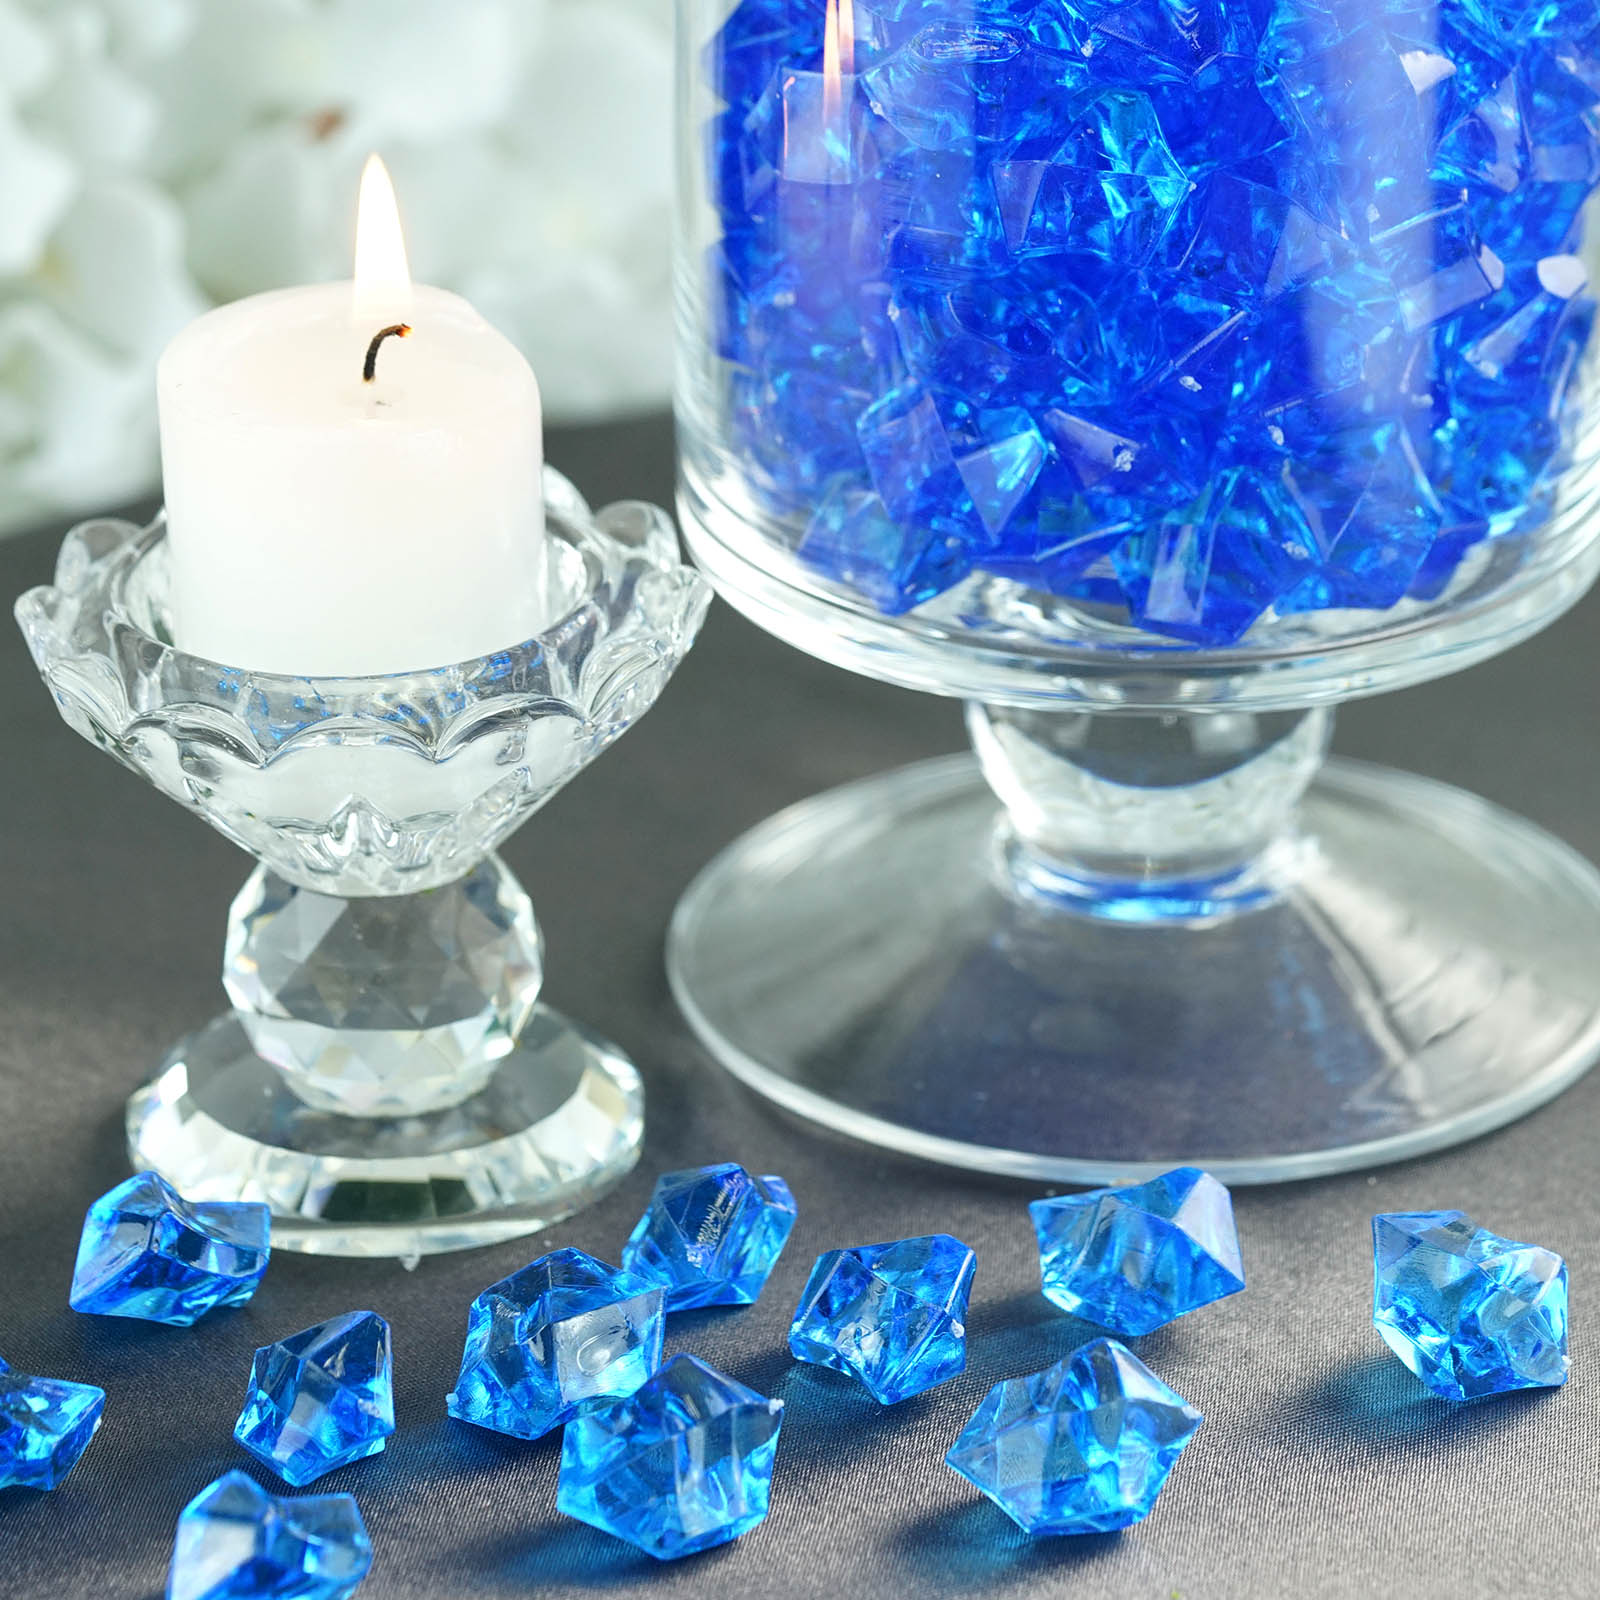 300-Acrylic-Ice-CRYSTAL-LIKE-Pieces-Wedding-Centerpieces-Decorations-Supplies thumbnail 58